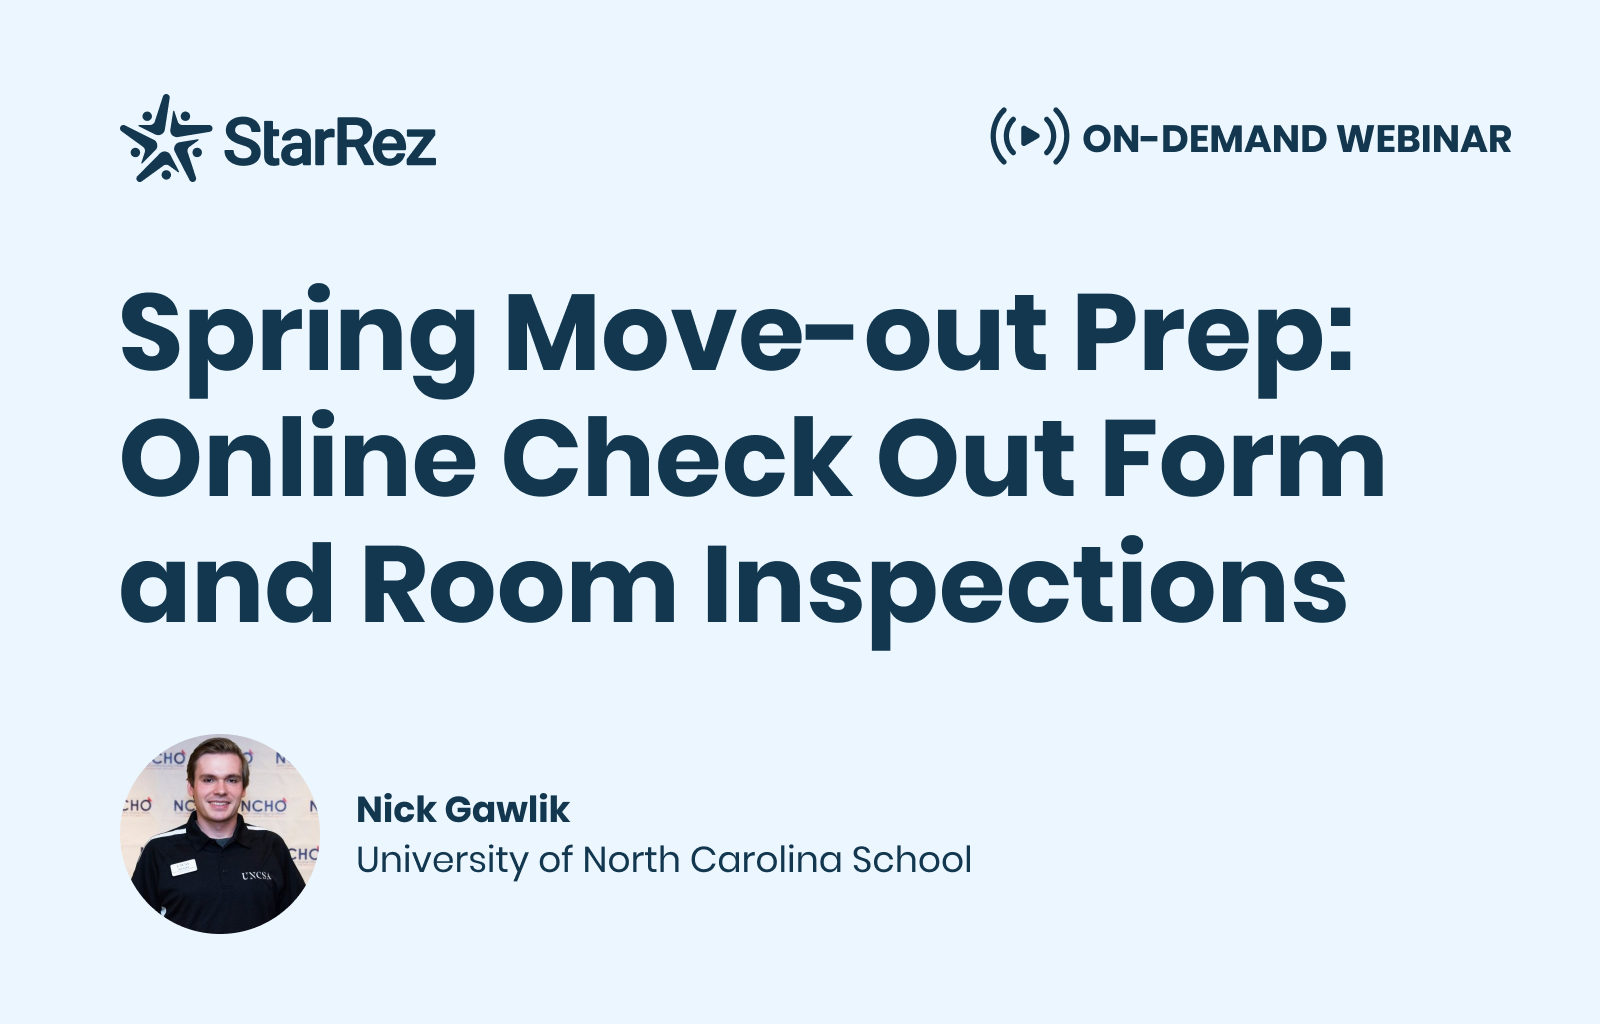 Spring Move-Out Prep: Online Check Out Form and Room Inspections